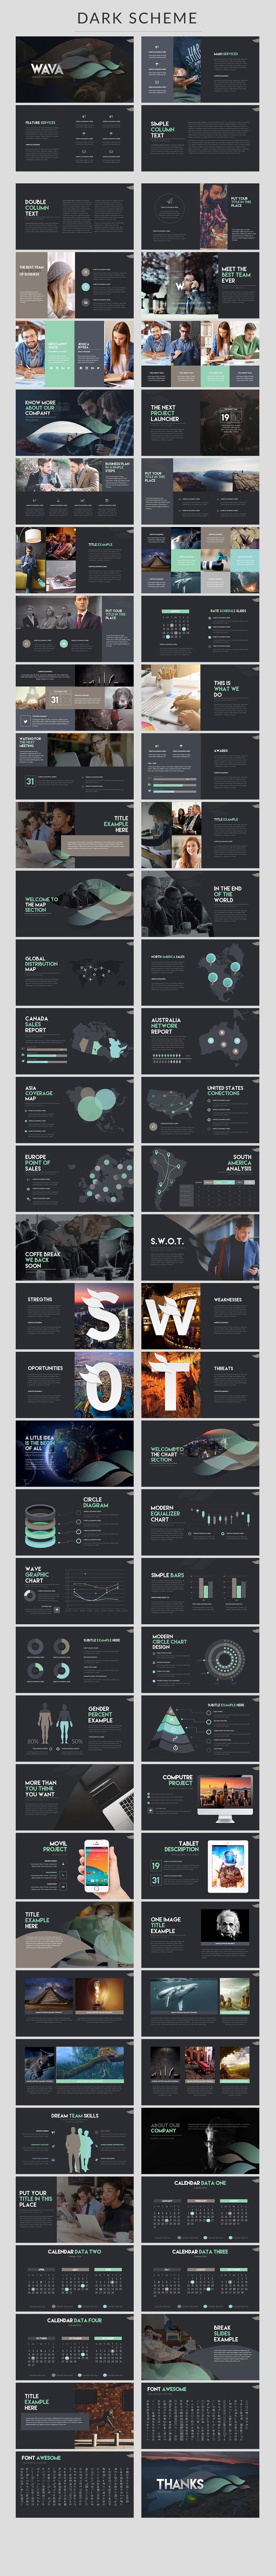 Wava | Keynote Template by Zacomic Studios on @creativemarket